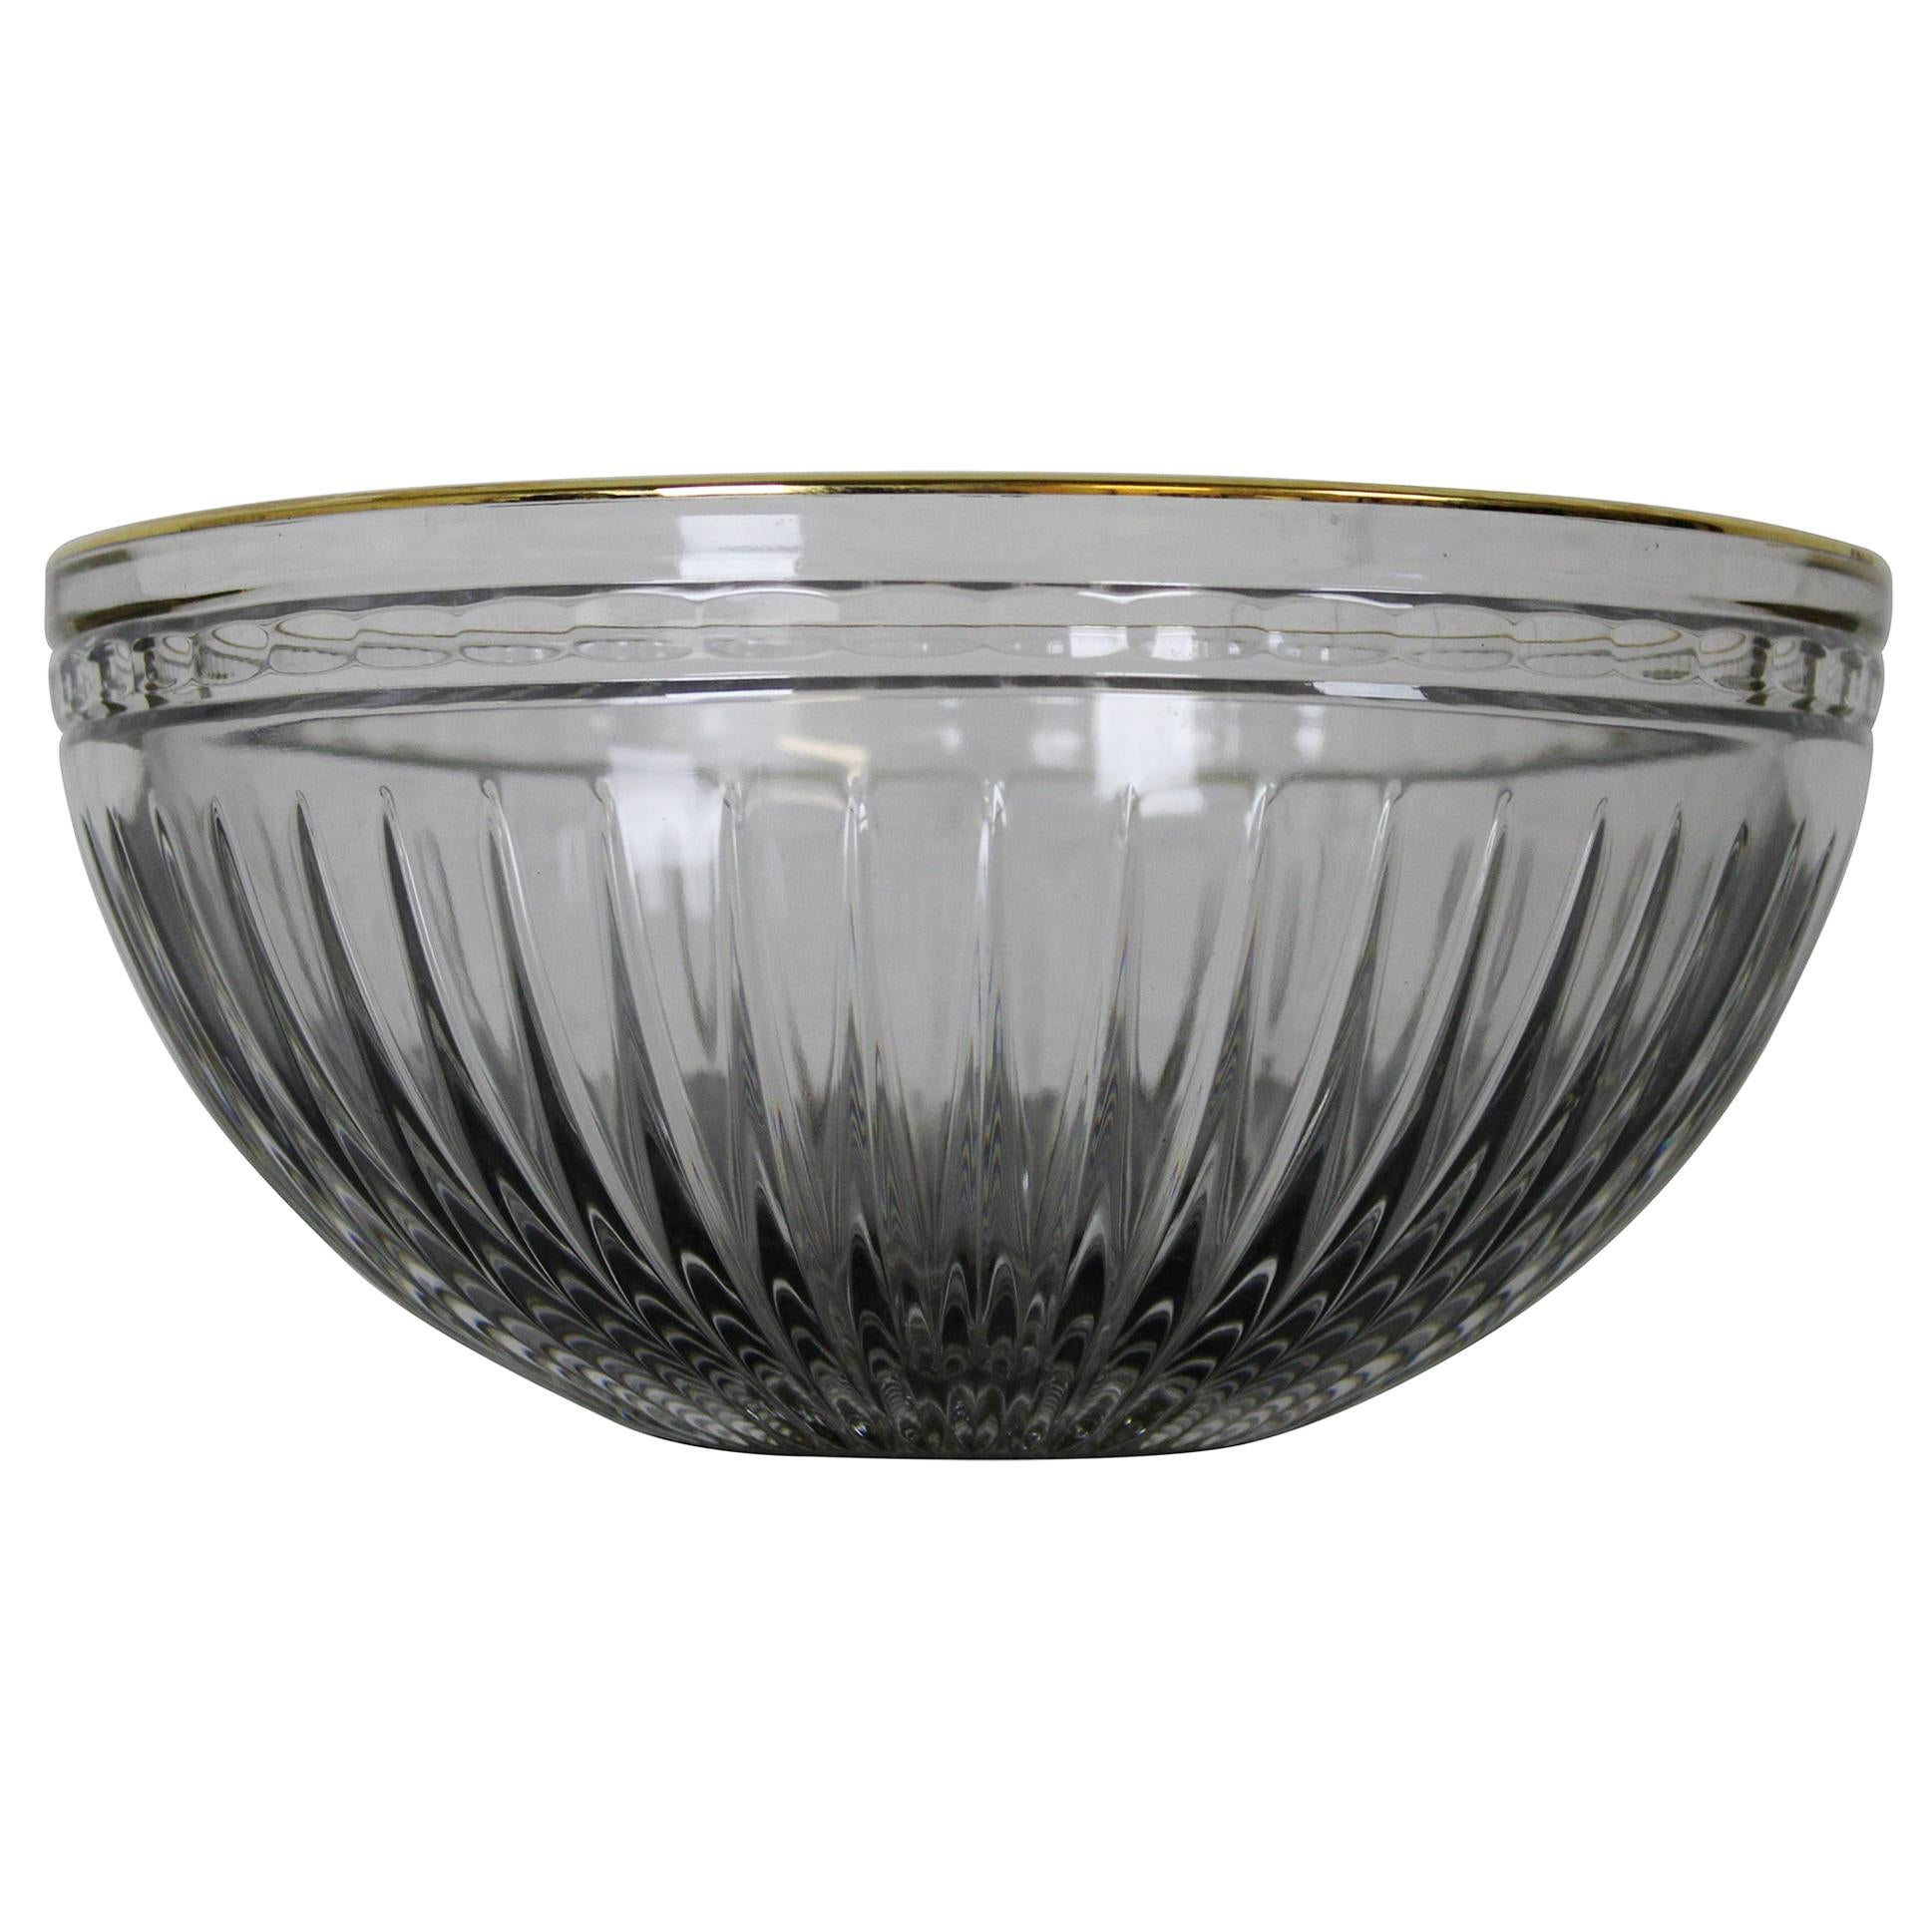 Waterford Marquis Hanover Gold Rimmed Cut Crystal Round Bowl